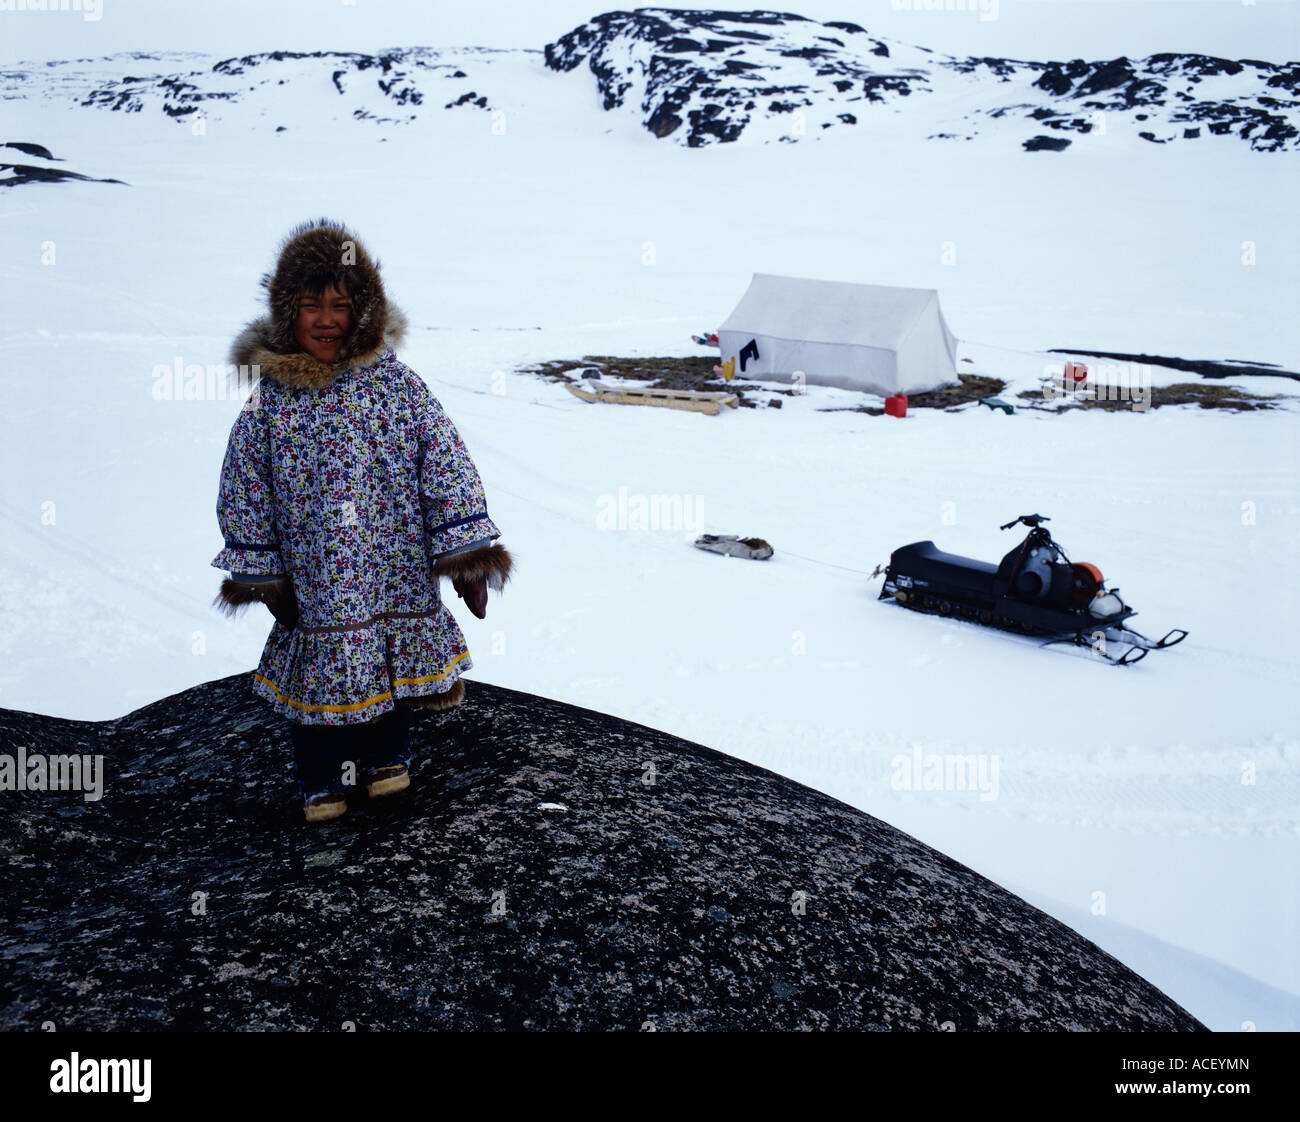 Inuit girl snowmobile and tent - Stock Image